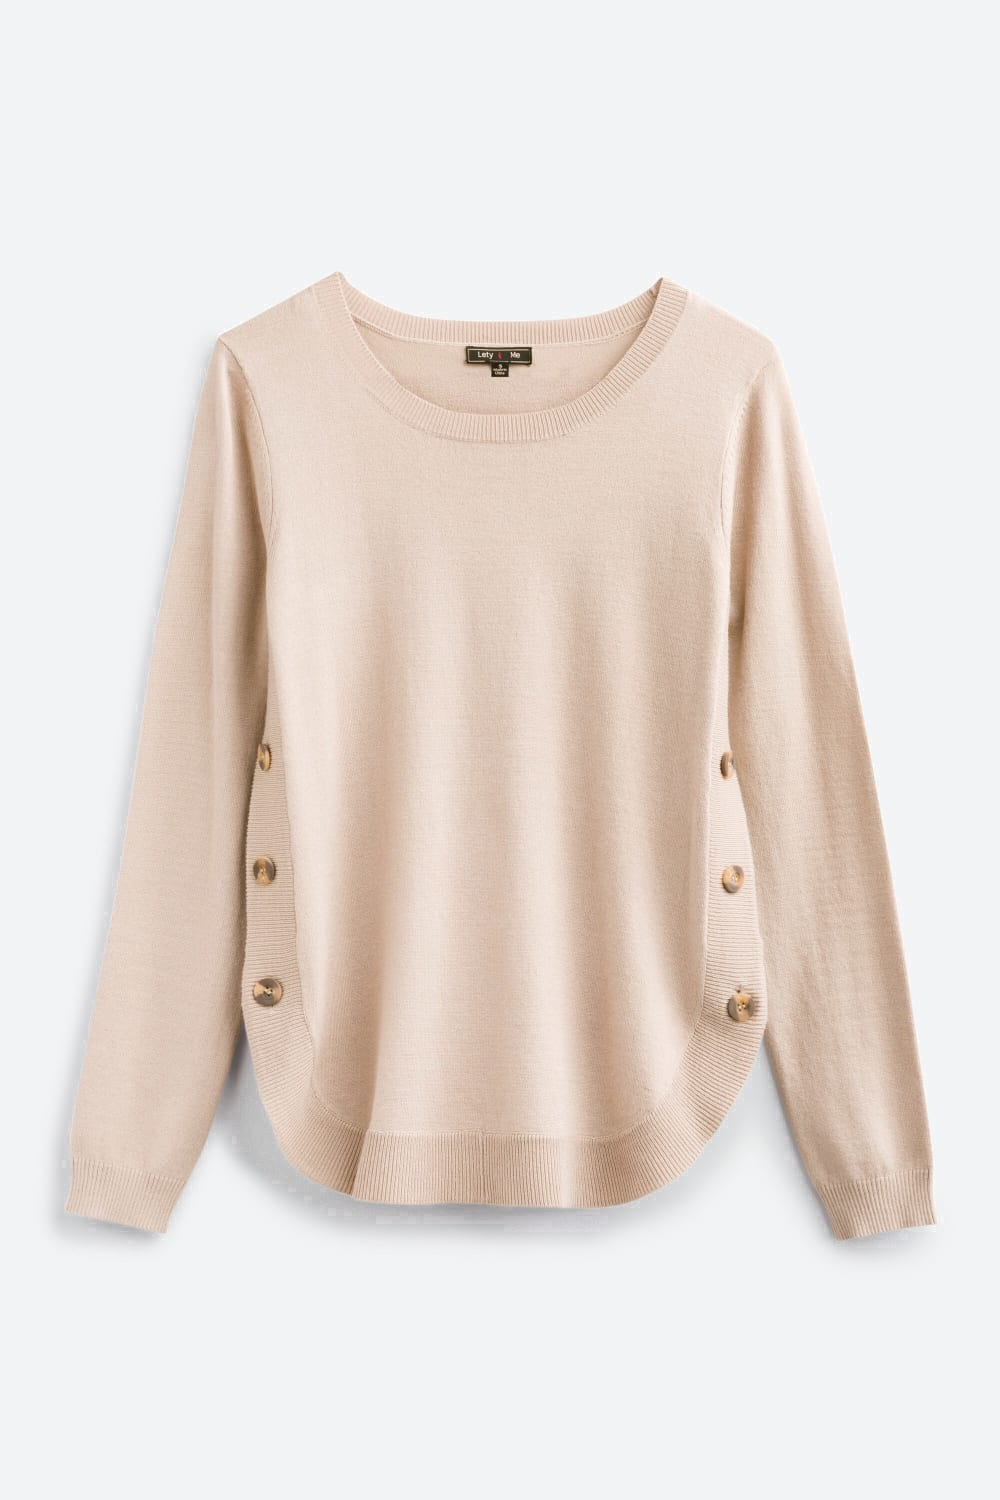 Lety Me December Button Detail Pullover In Tan Stitch Fix Outfits Stitch Fix Pullover [ 1500 x 1000 Pixel ]